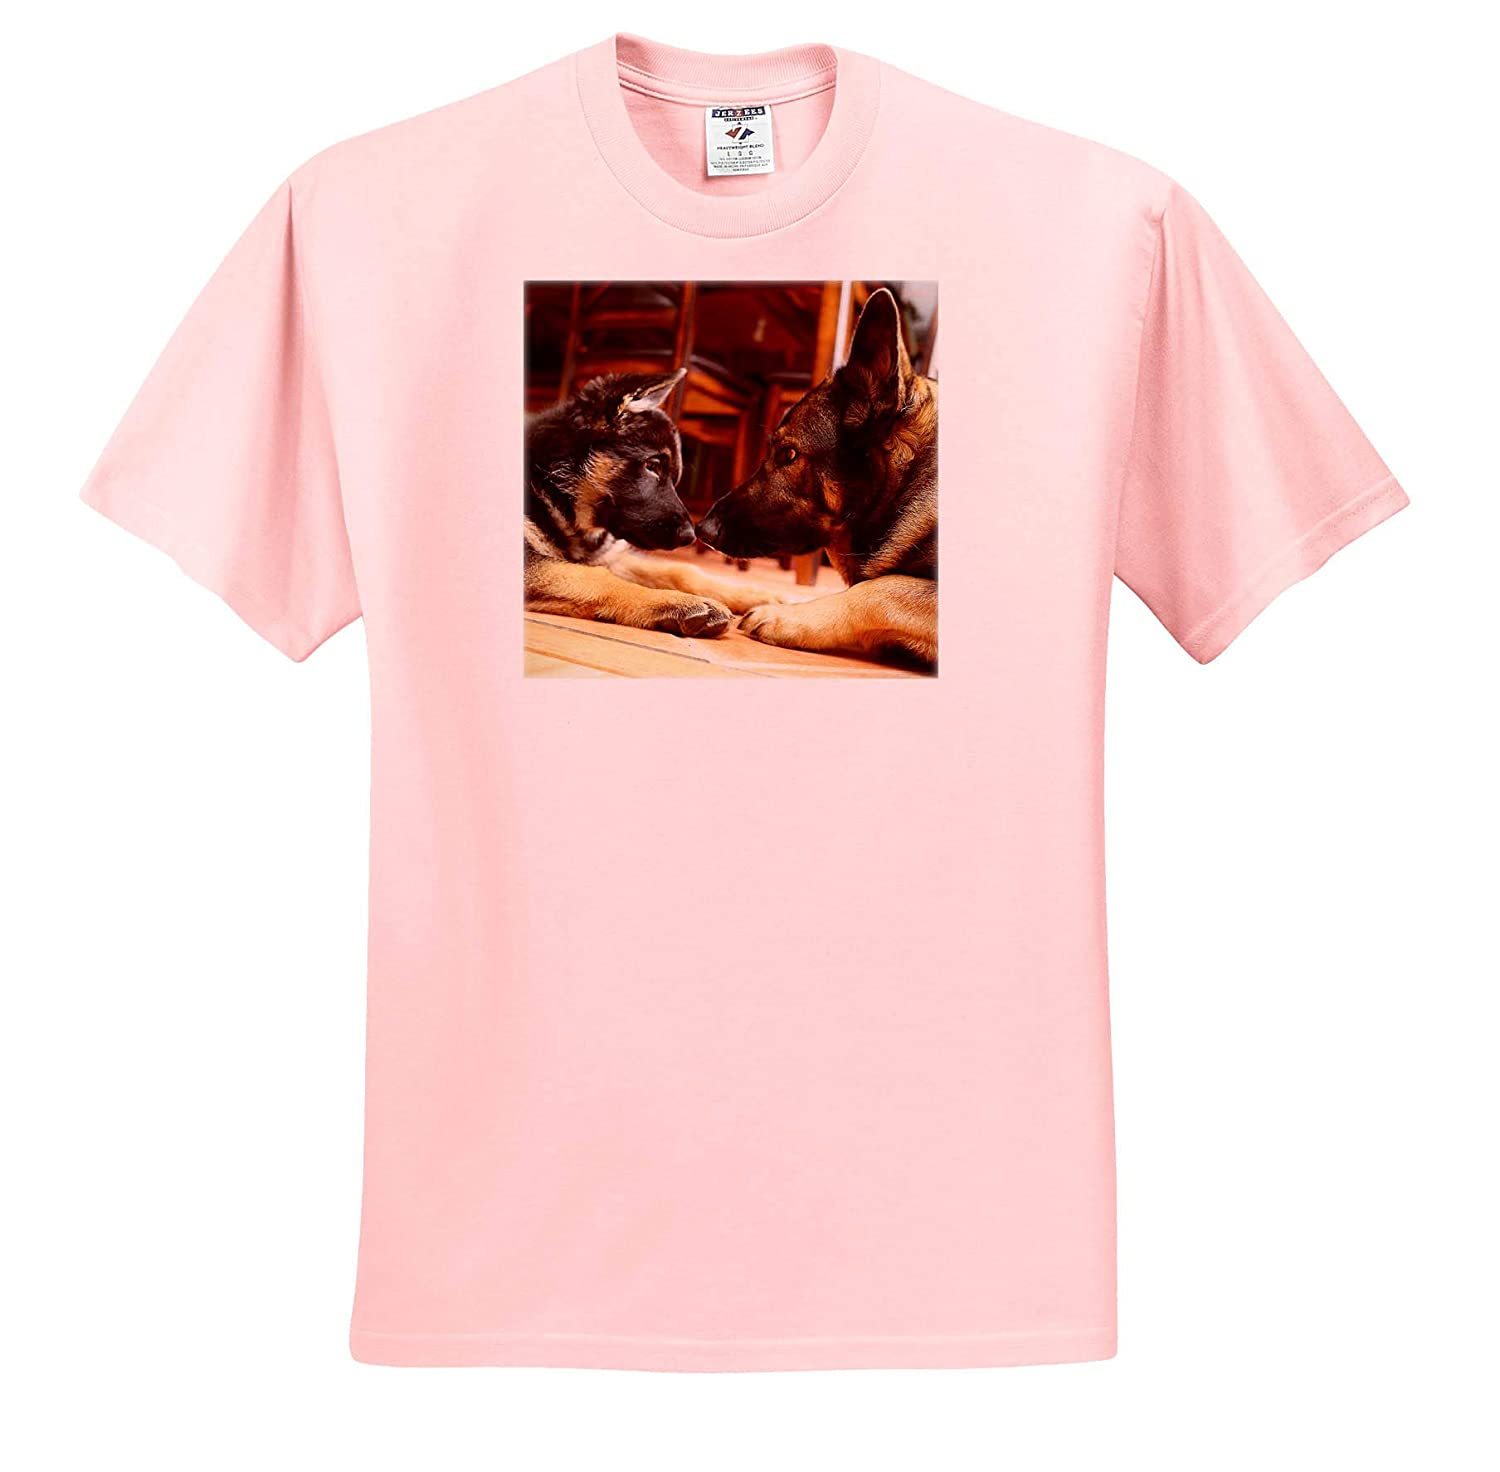 3dRose Stamp City Photo of Two German Shepherds Nose-to-Nose Figuring Each Other Out Animals - T-Shirts